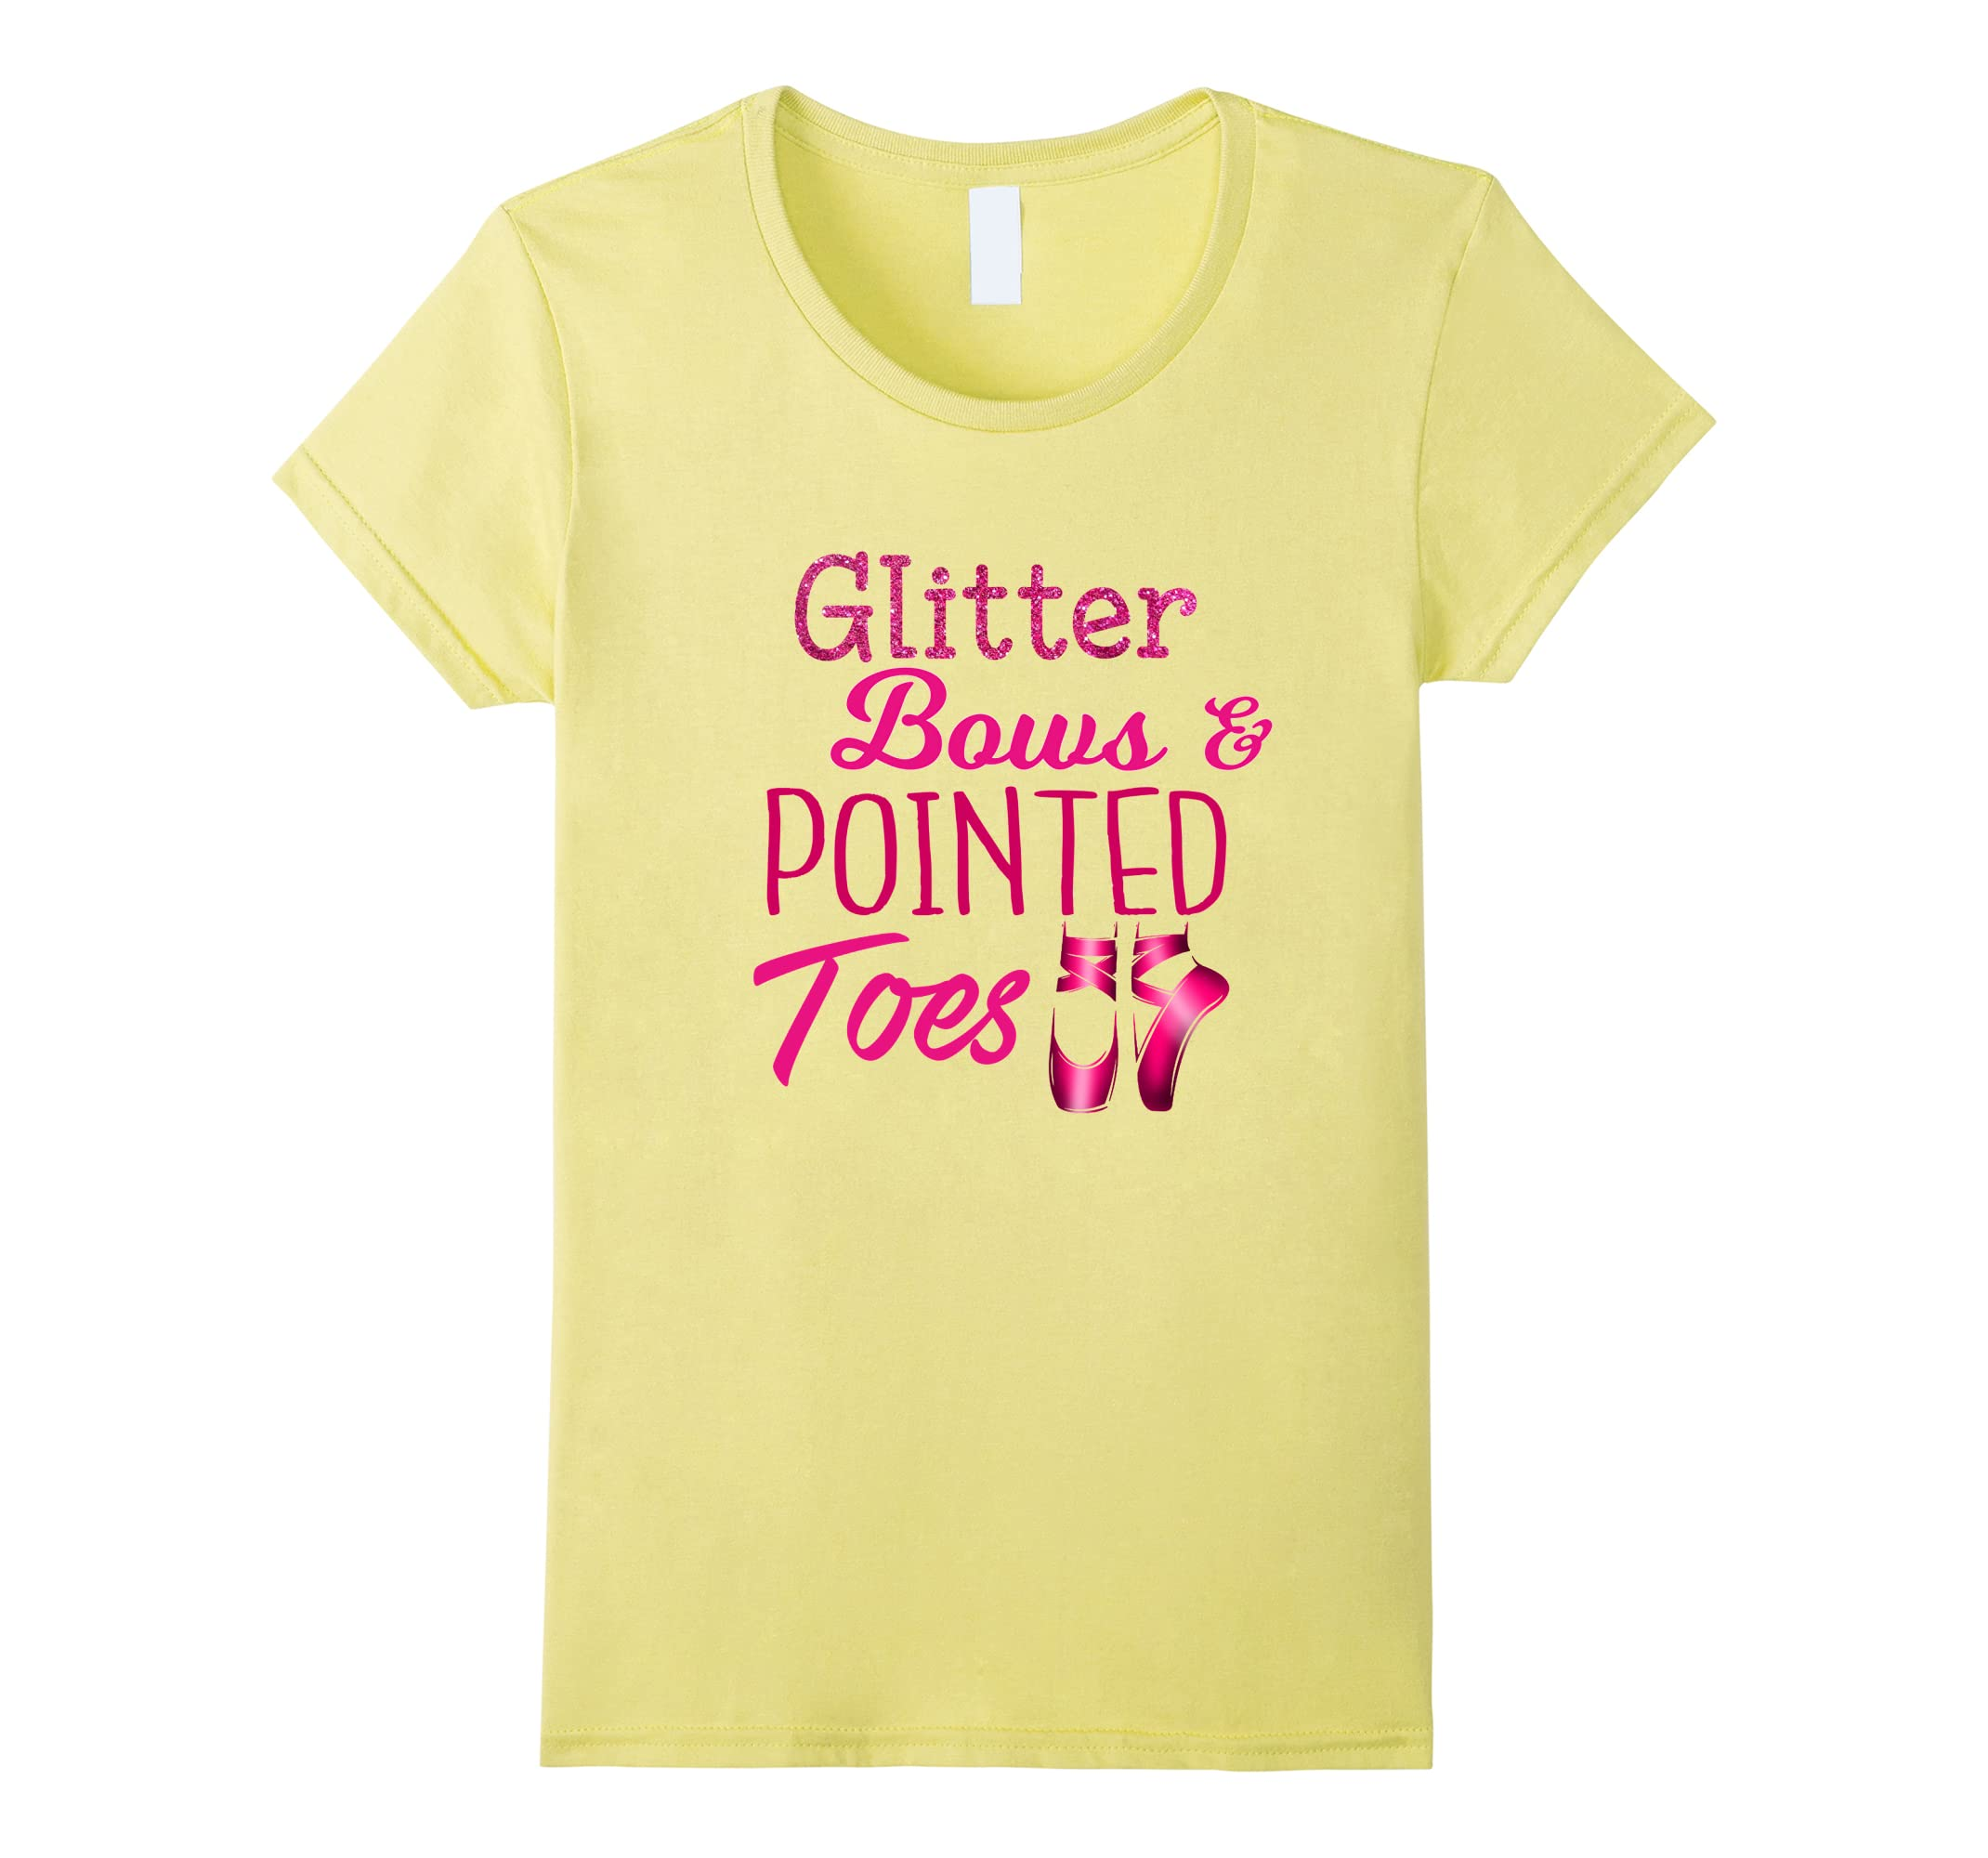 2eb172d78 Amazon.com  Glitter Bows Pointed Toes Funny Cheer Dance Ballet Shirt ...